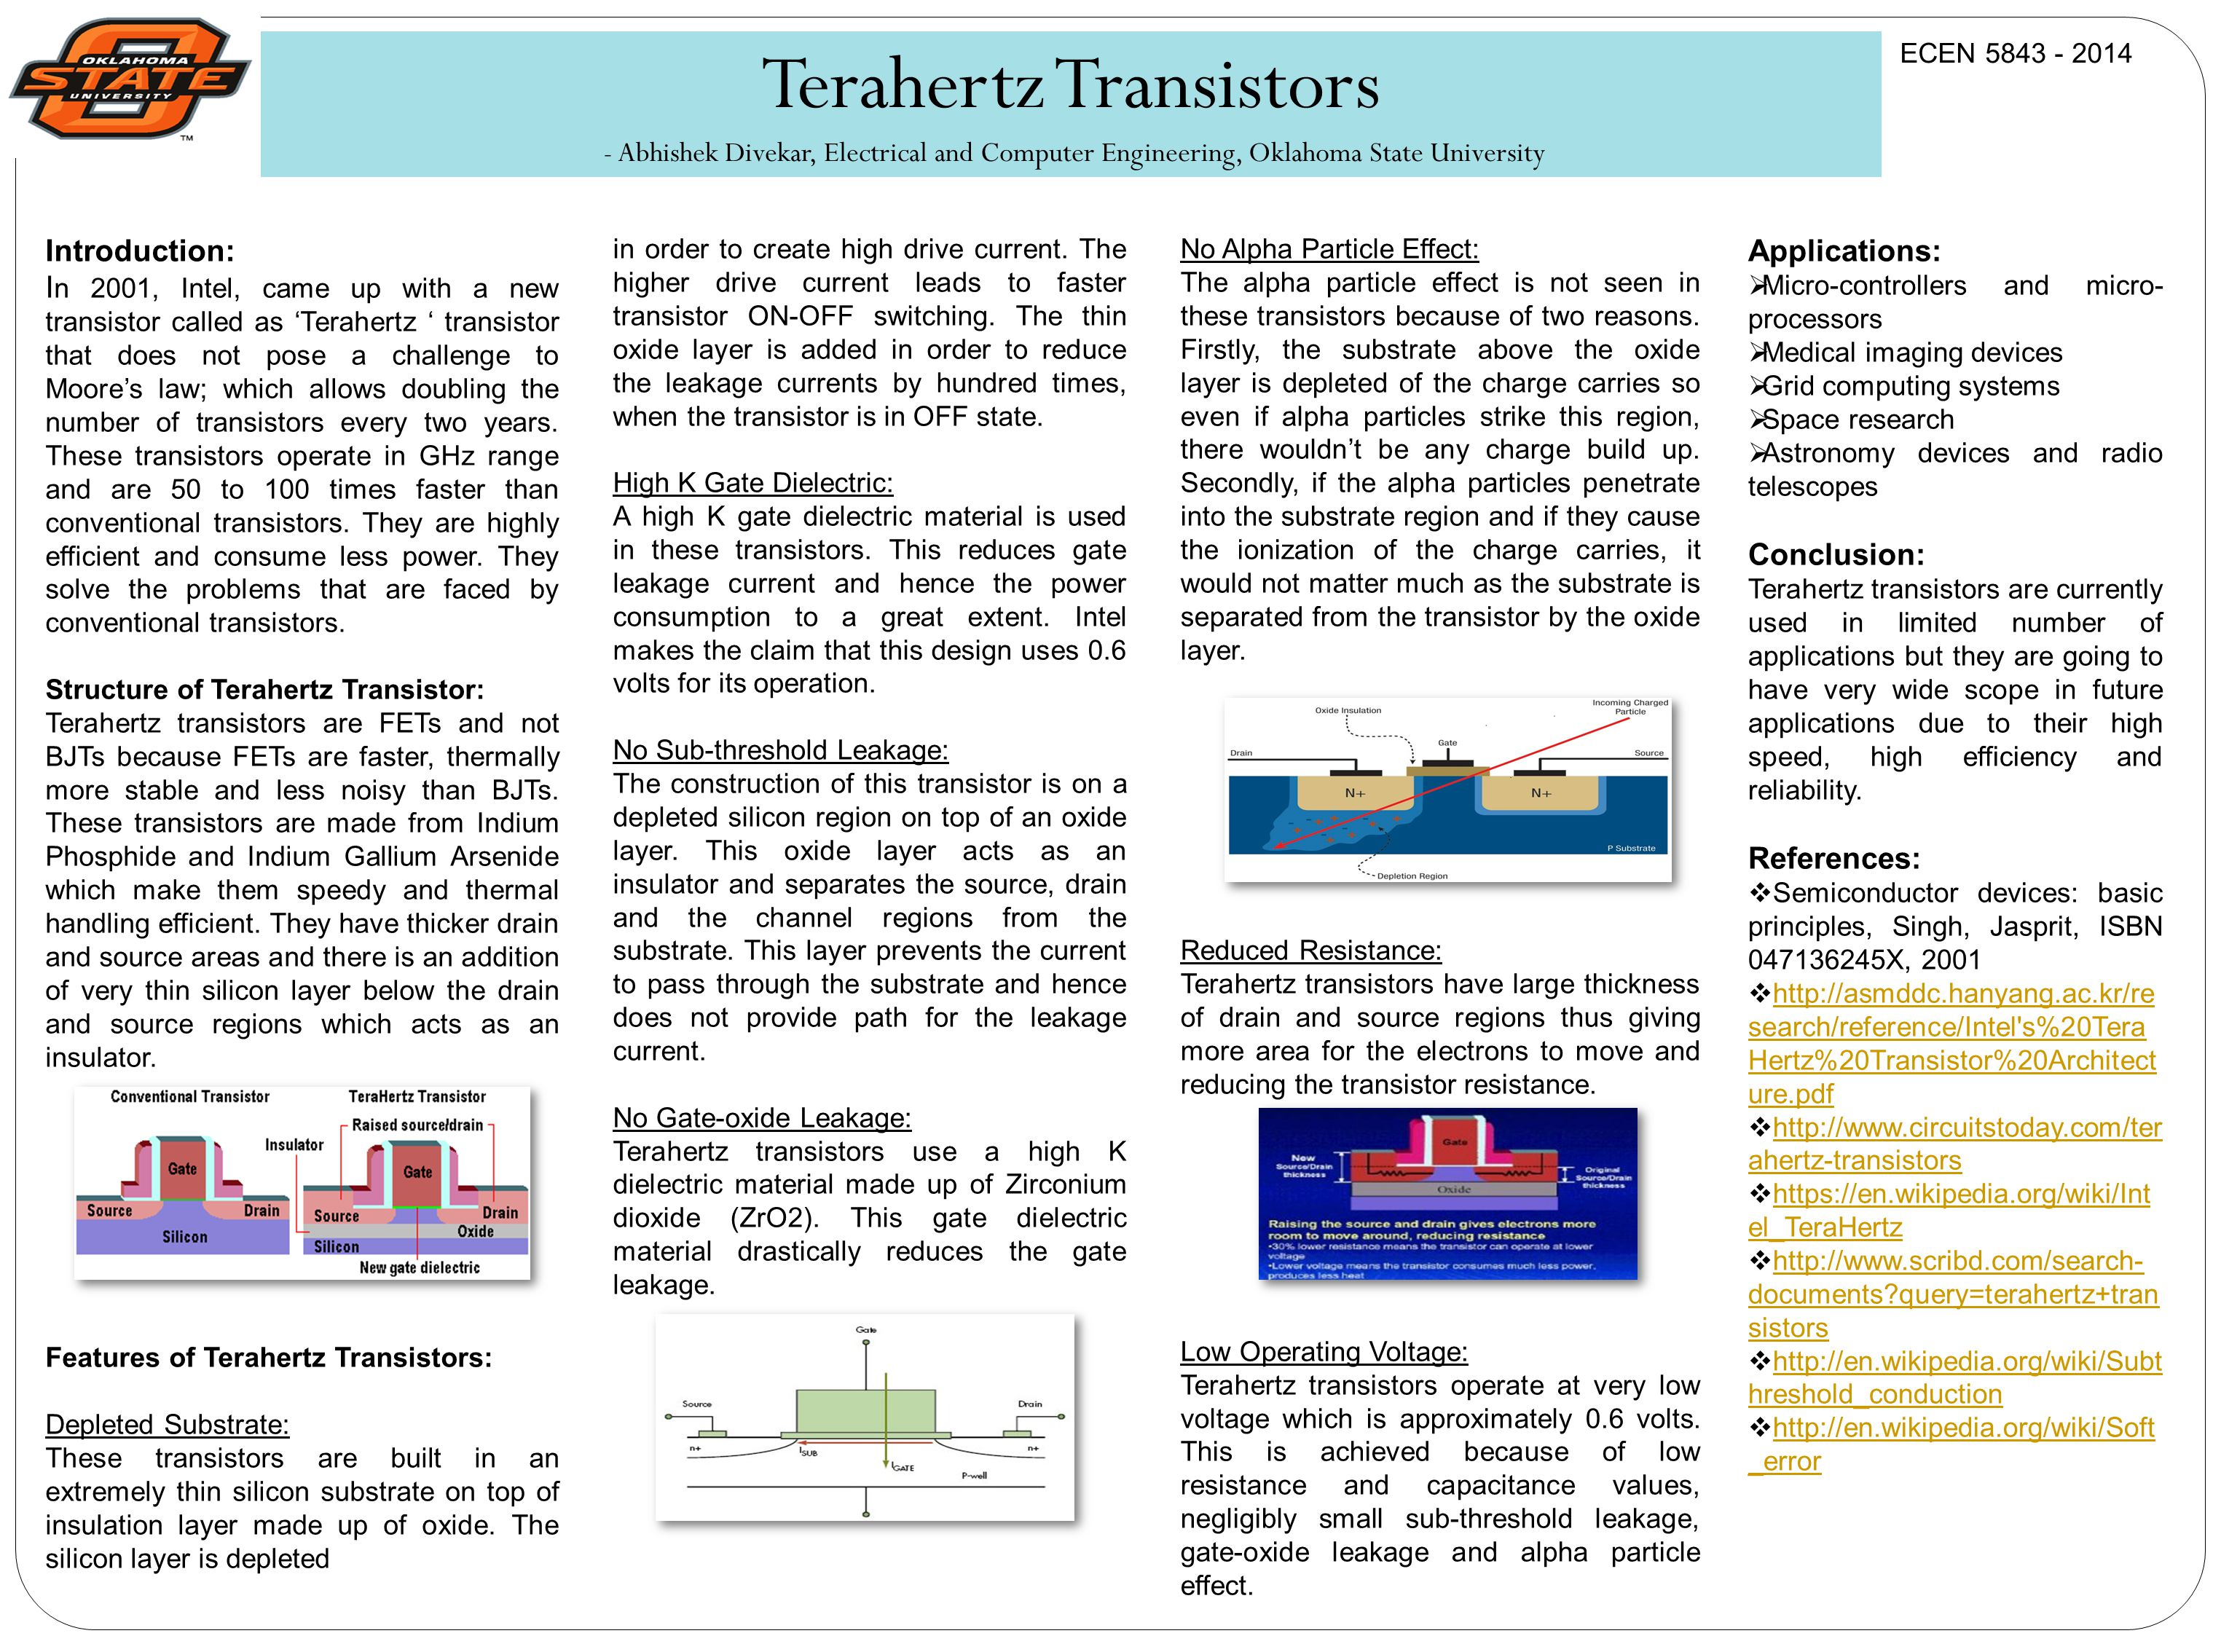 Terahertz Transistors - Abhishek Divekar, Electrical and Computer Engineering, Oklahoma State University Introduction: I n 2001, Intel, came up with a new transistor called as Terahertz transistor that does not pose a challenge to Moores law; which allows doubling the number of transistors every two years.